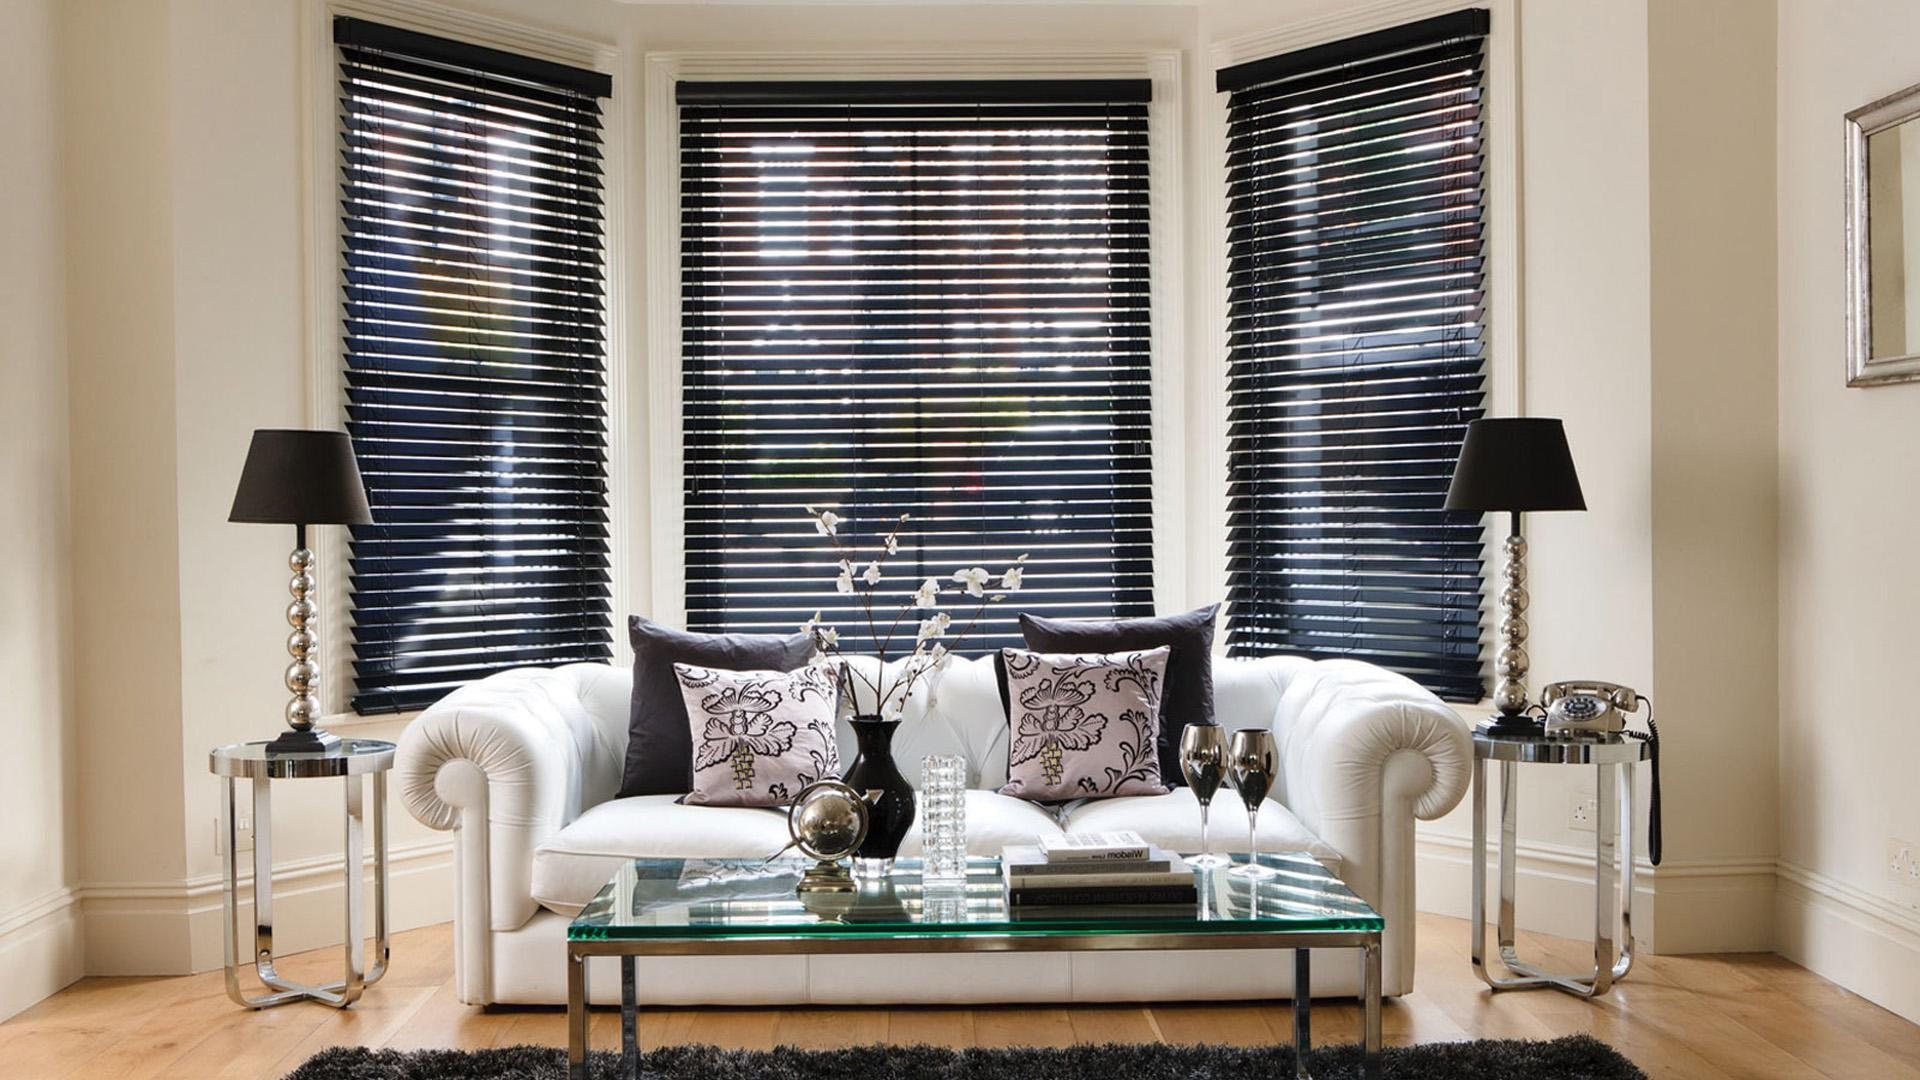 How To Remove Vertical Blinds.How To Remove The Blinds How To Remove Vertical And